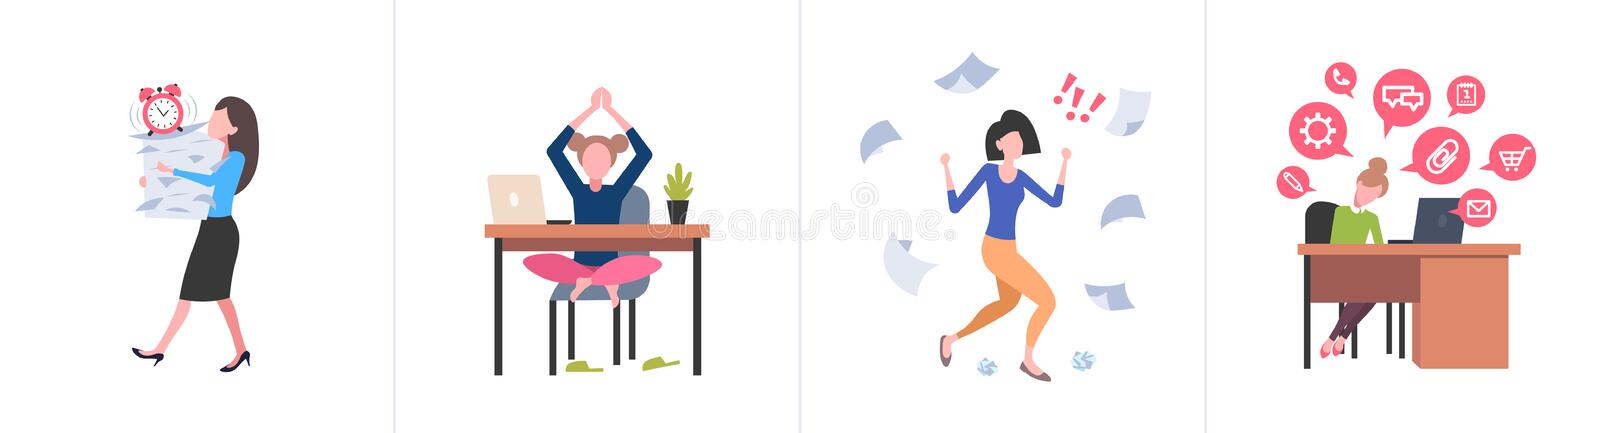 Set different business concepts female businesspeople hardworking process concept various working situations horizontal royalty free illustration